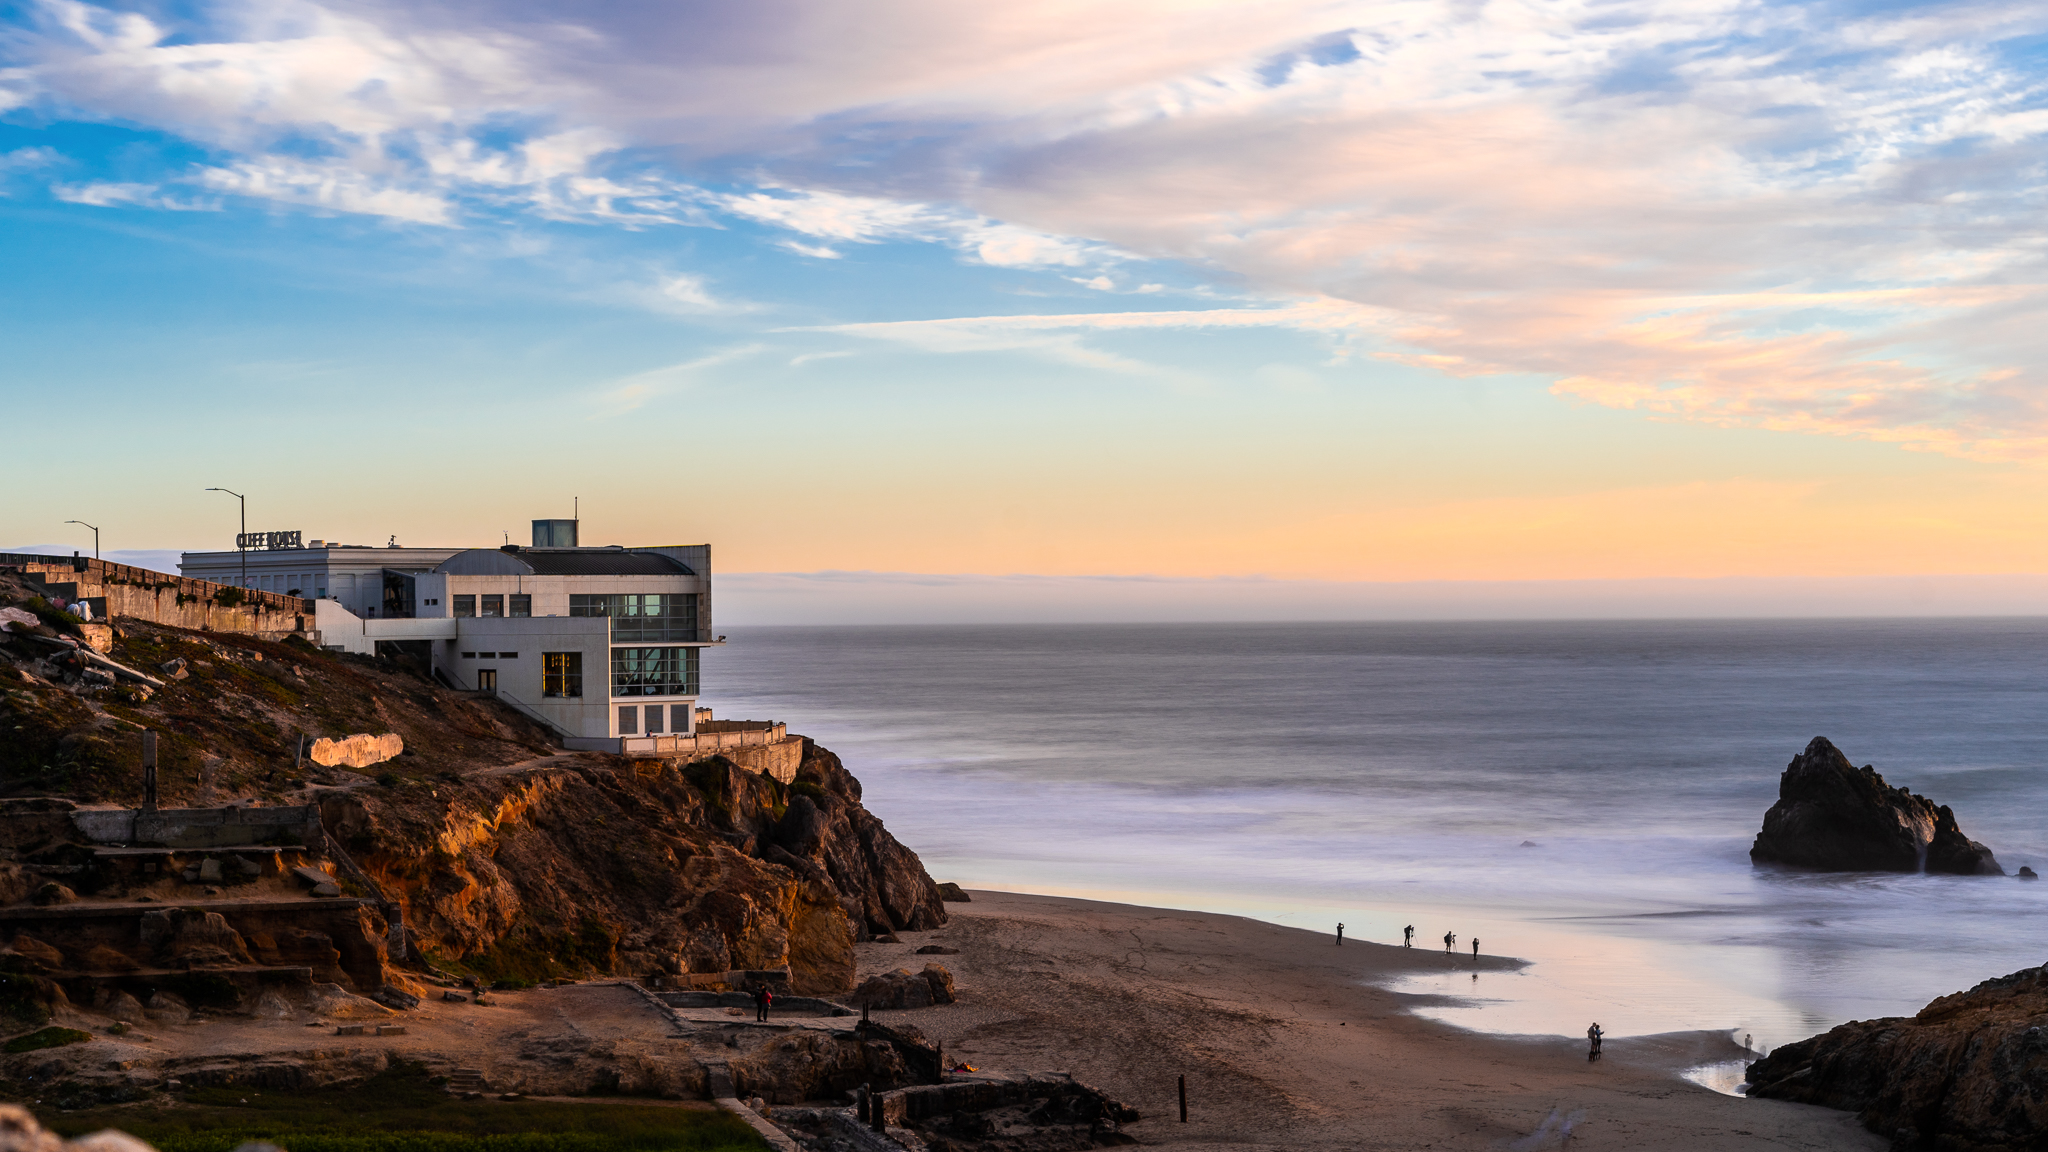 Cliff House, Golden Gate National Recreation Area, San Francisco